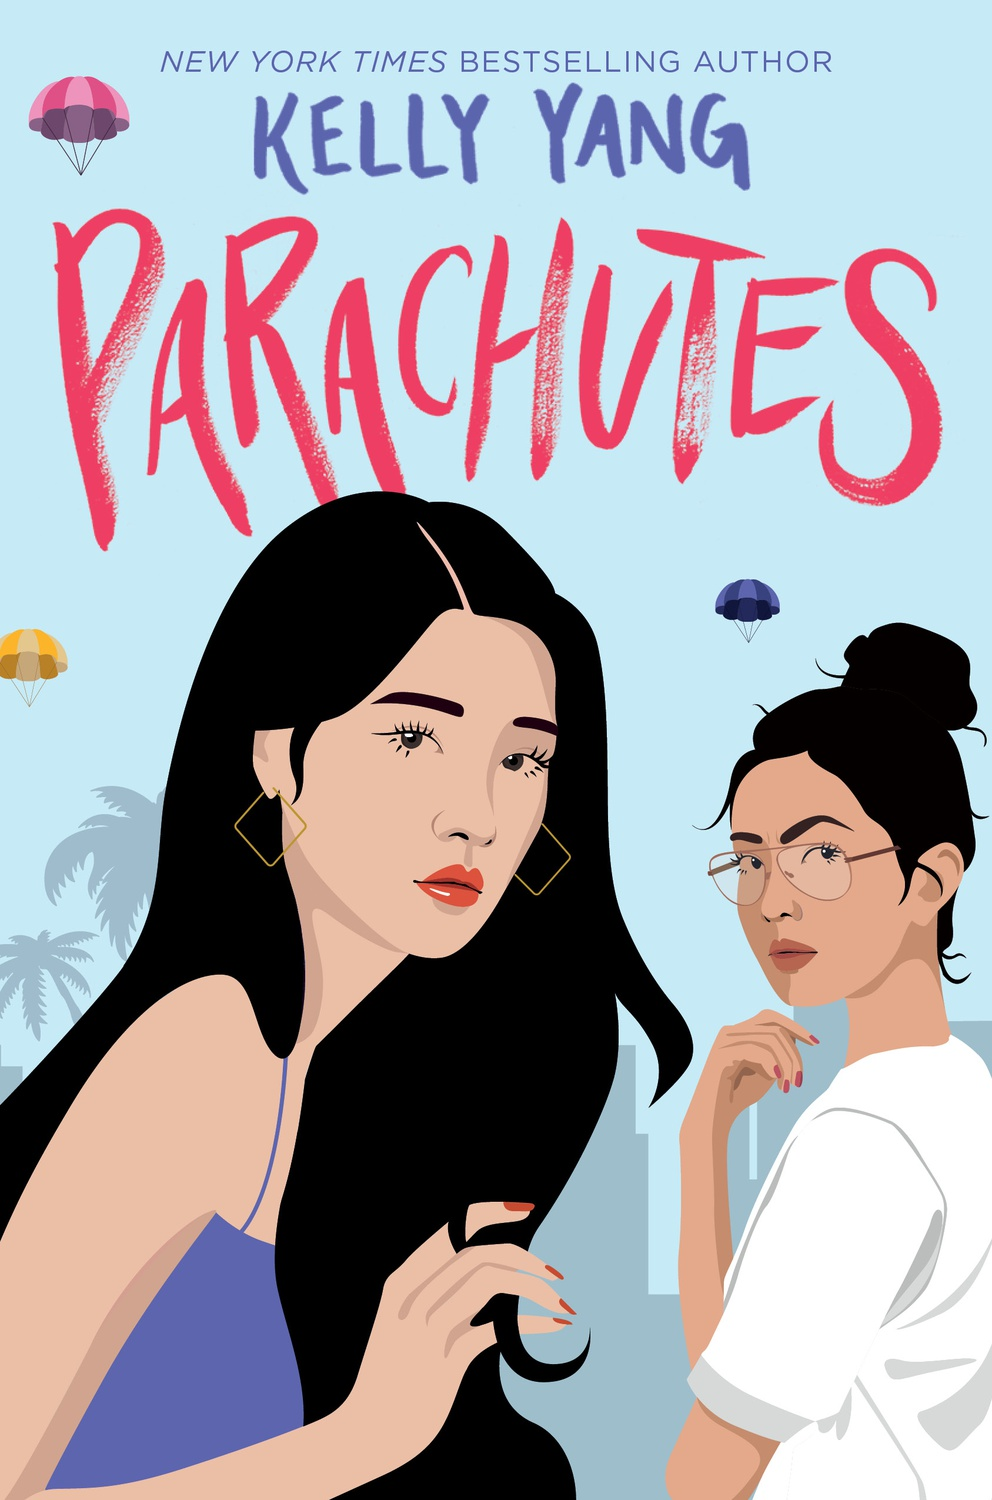 Parachutes is Kelly Yang's debut young adult novel exploring themes of immigration, wealth, friendship, and trauma.